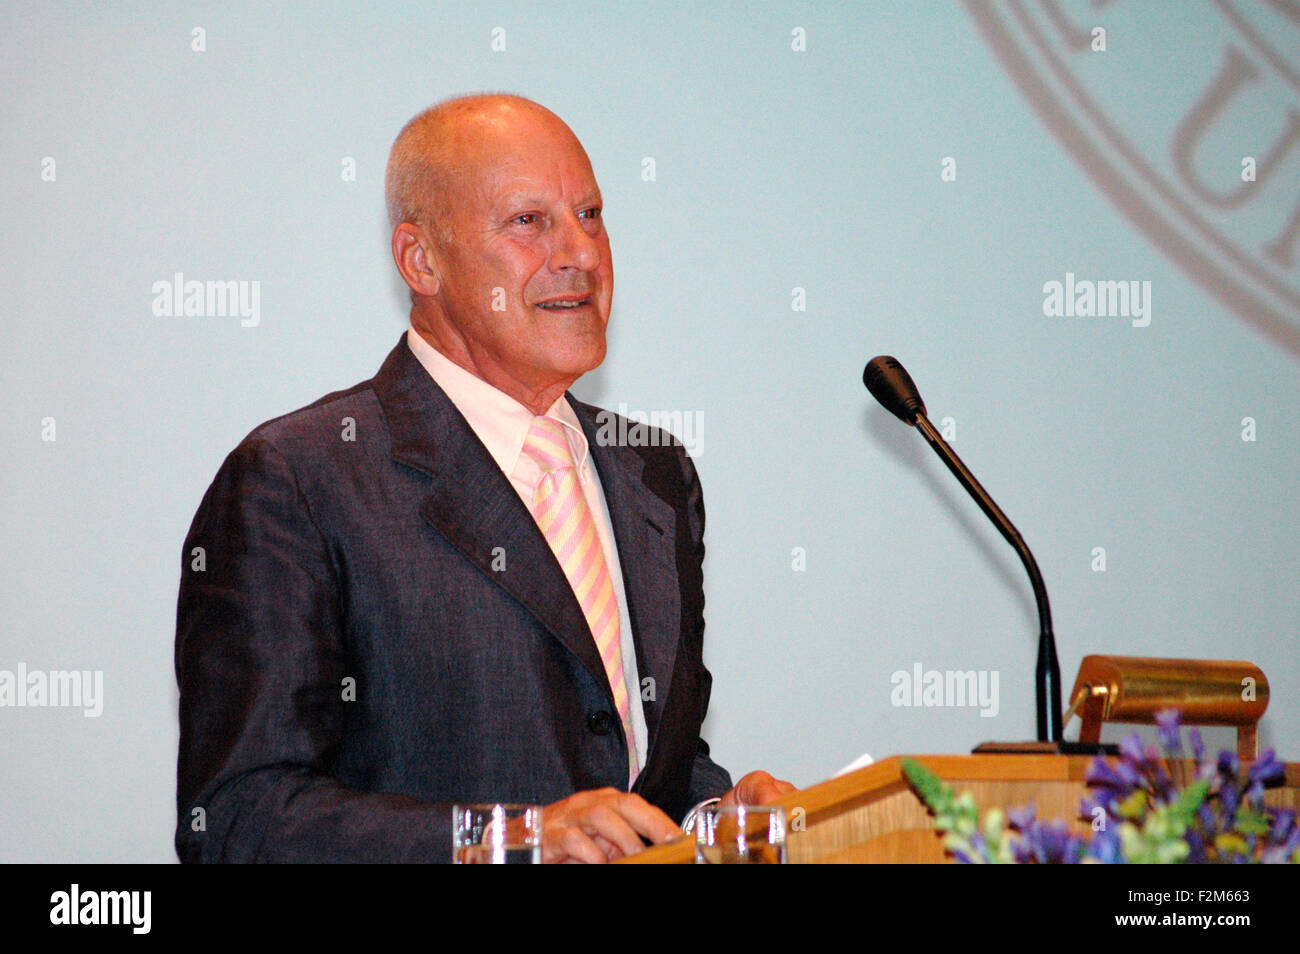 Norman Foster Stock Photos & Norman Foster Stock Images - Alamy